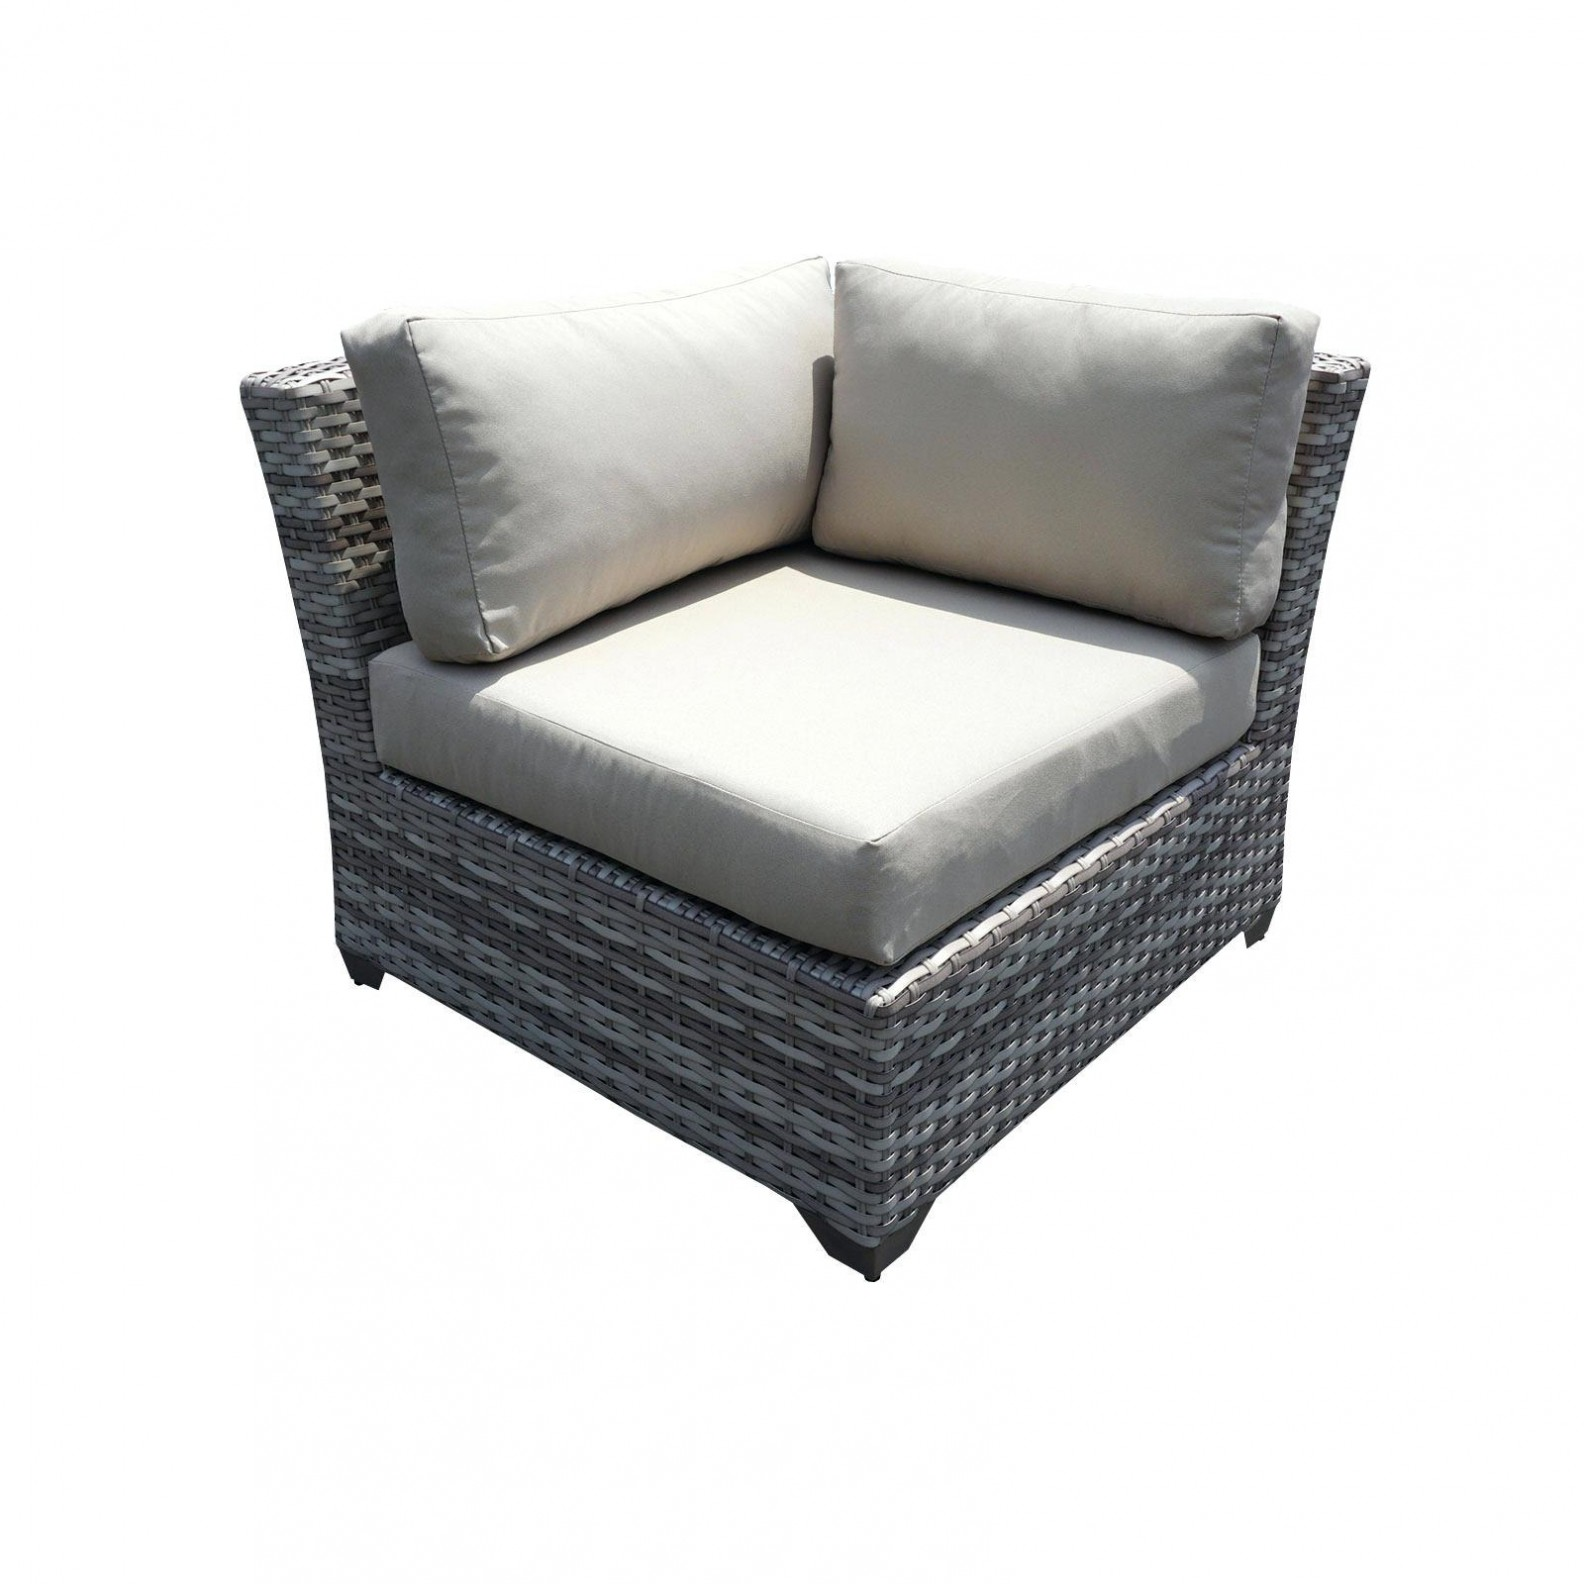 Lounge Sessel Rattan Rattan Sofa Set Best Garten Ideas Lounge Sessel Garten Fresh